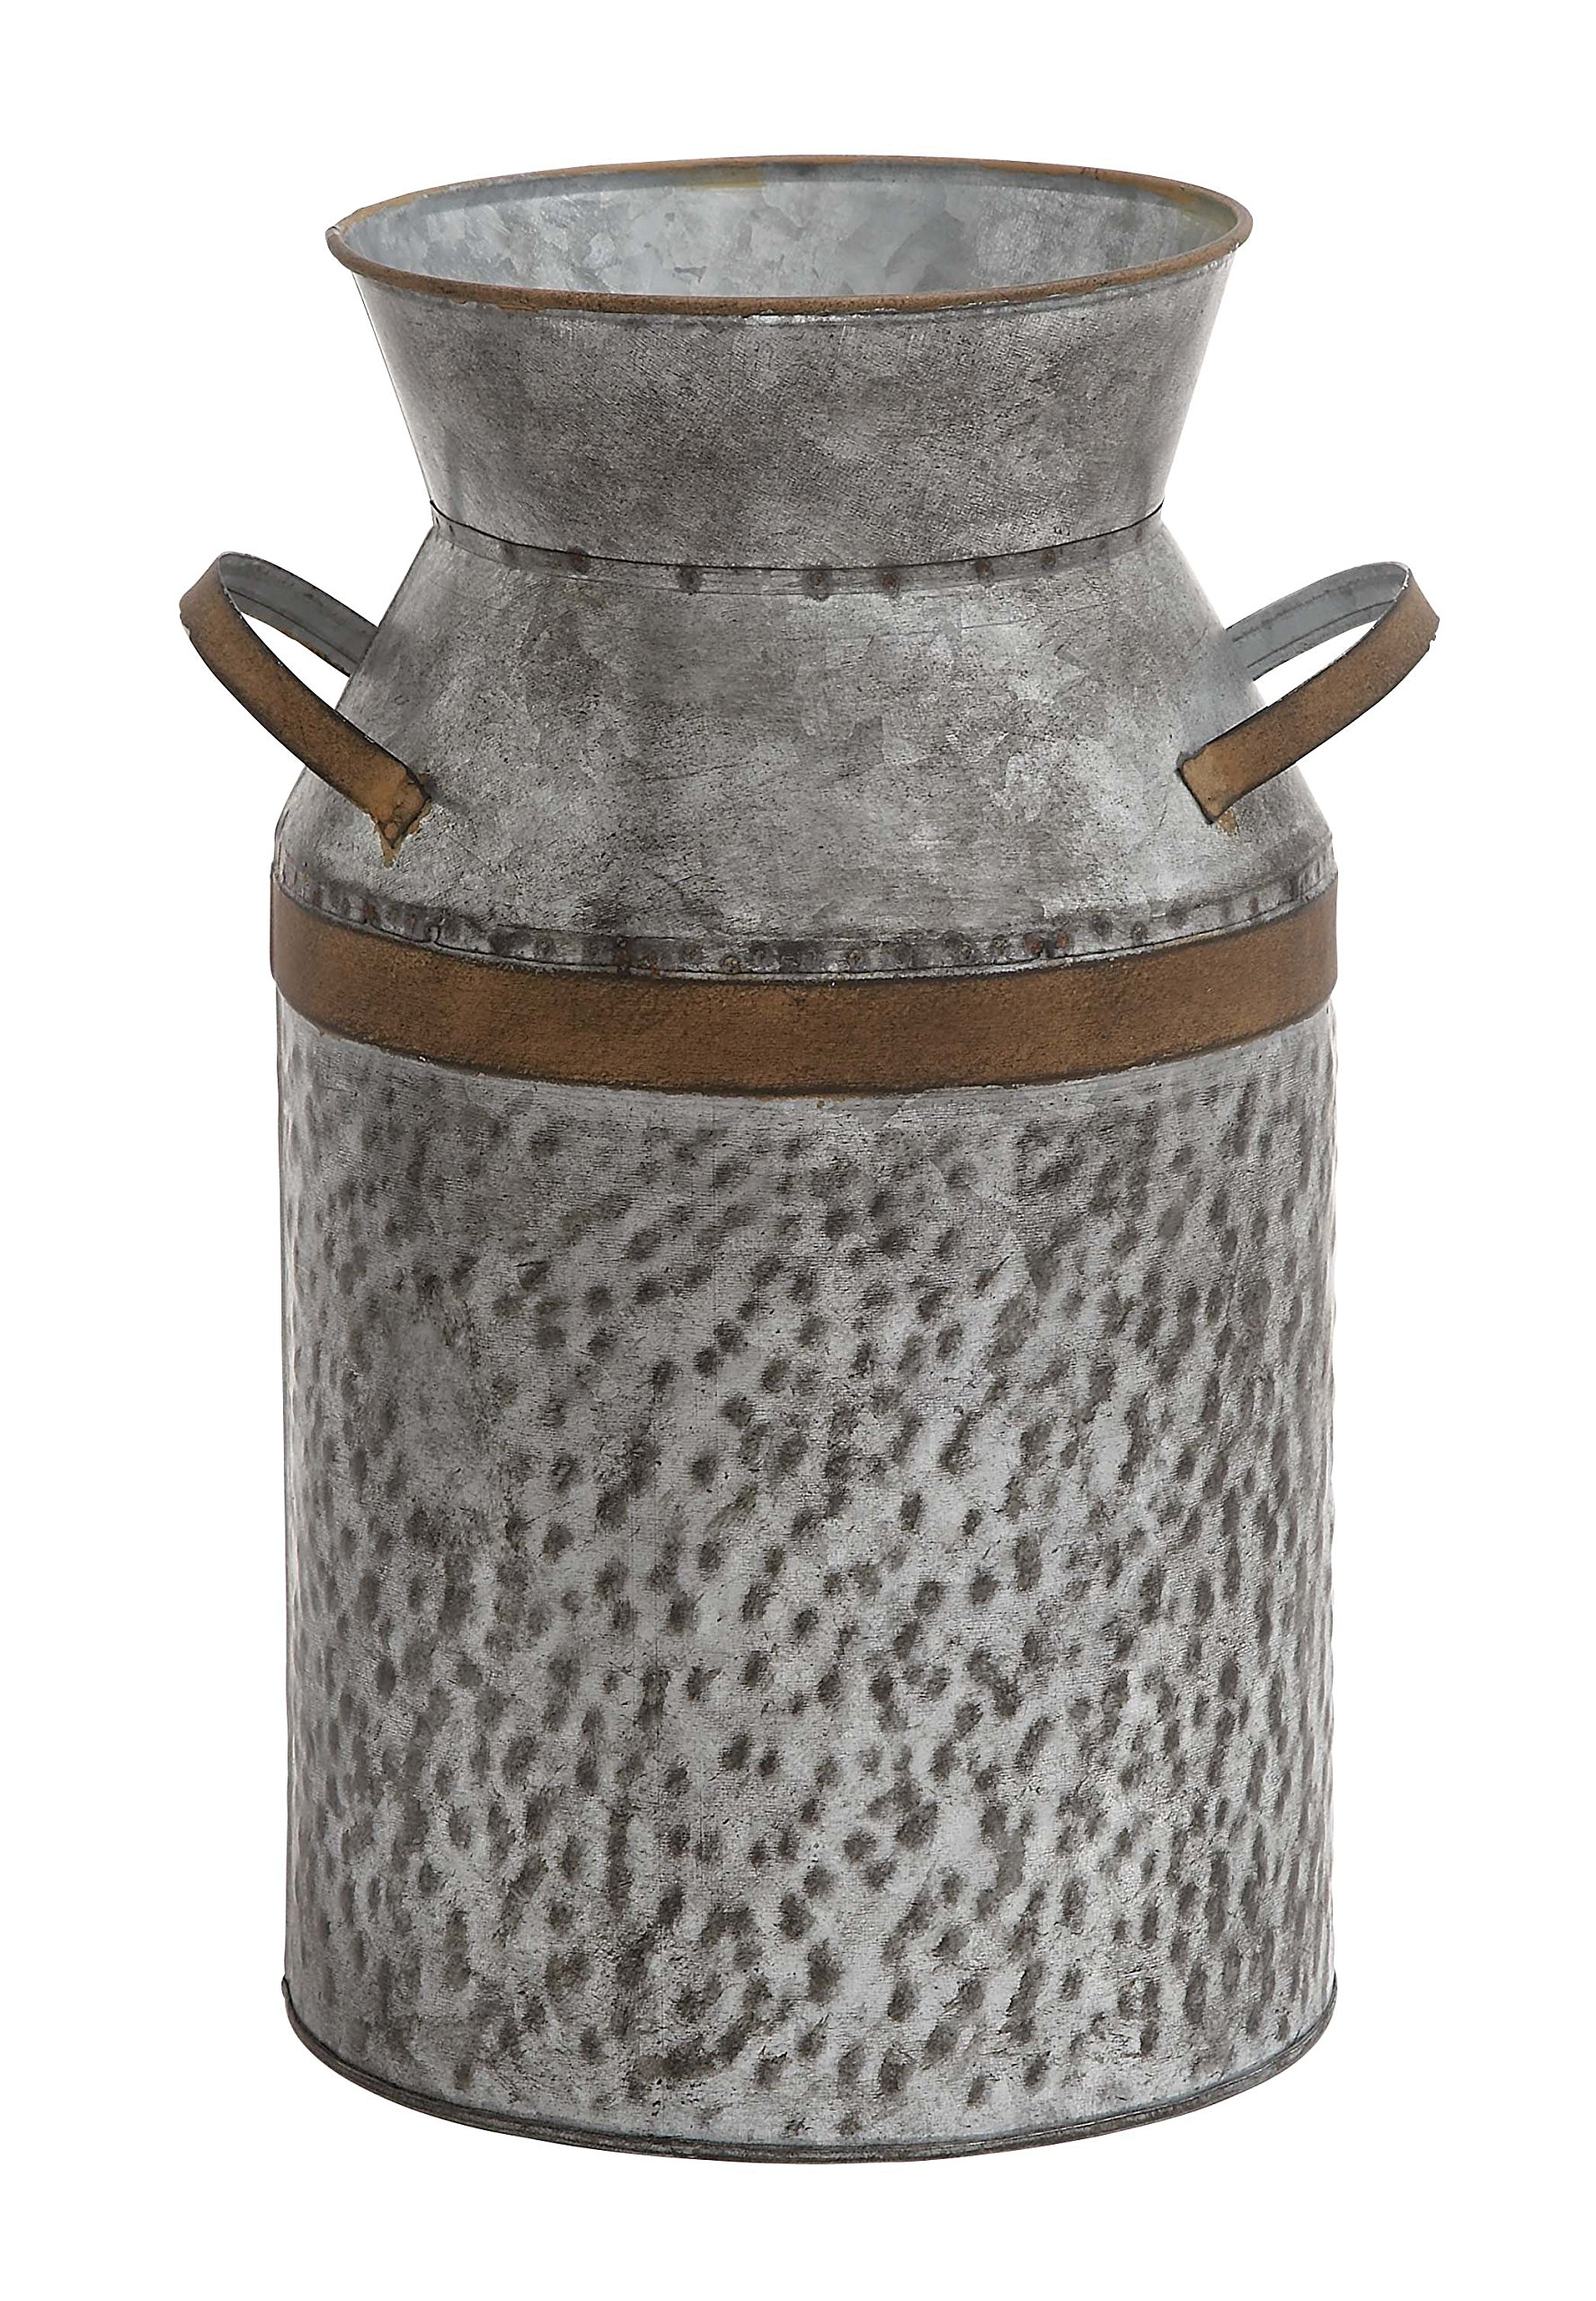 Deco 79 93992 Metal Galvanized Milk Can 10'' W, 14'' H -